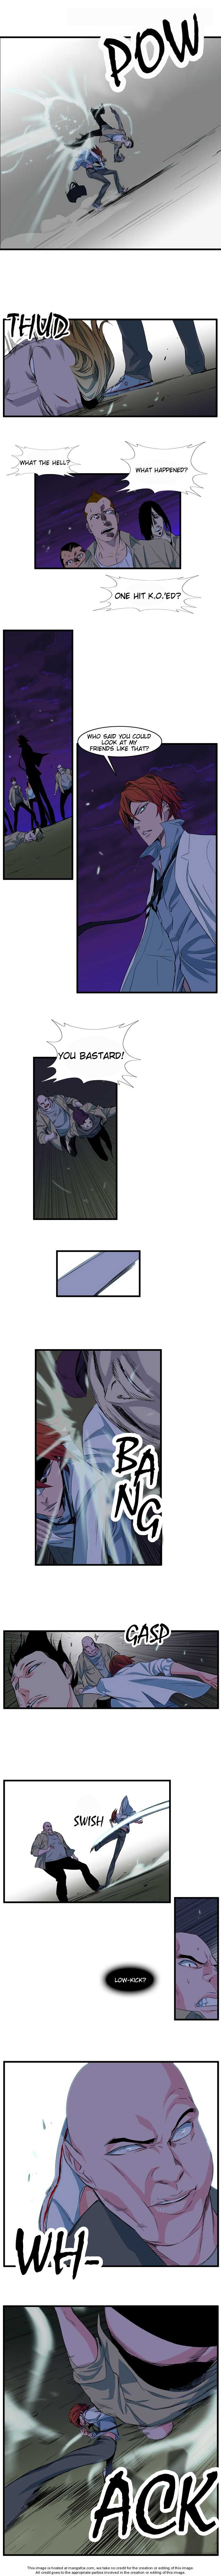 Noblesse 103 Page 2